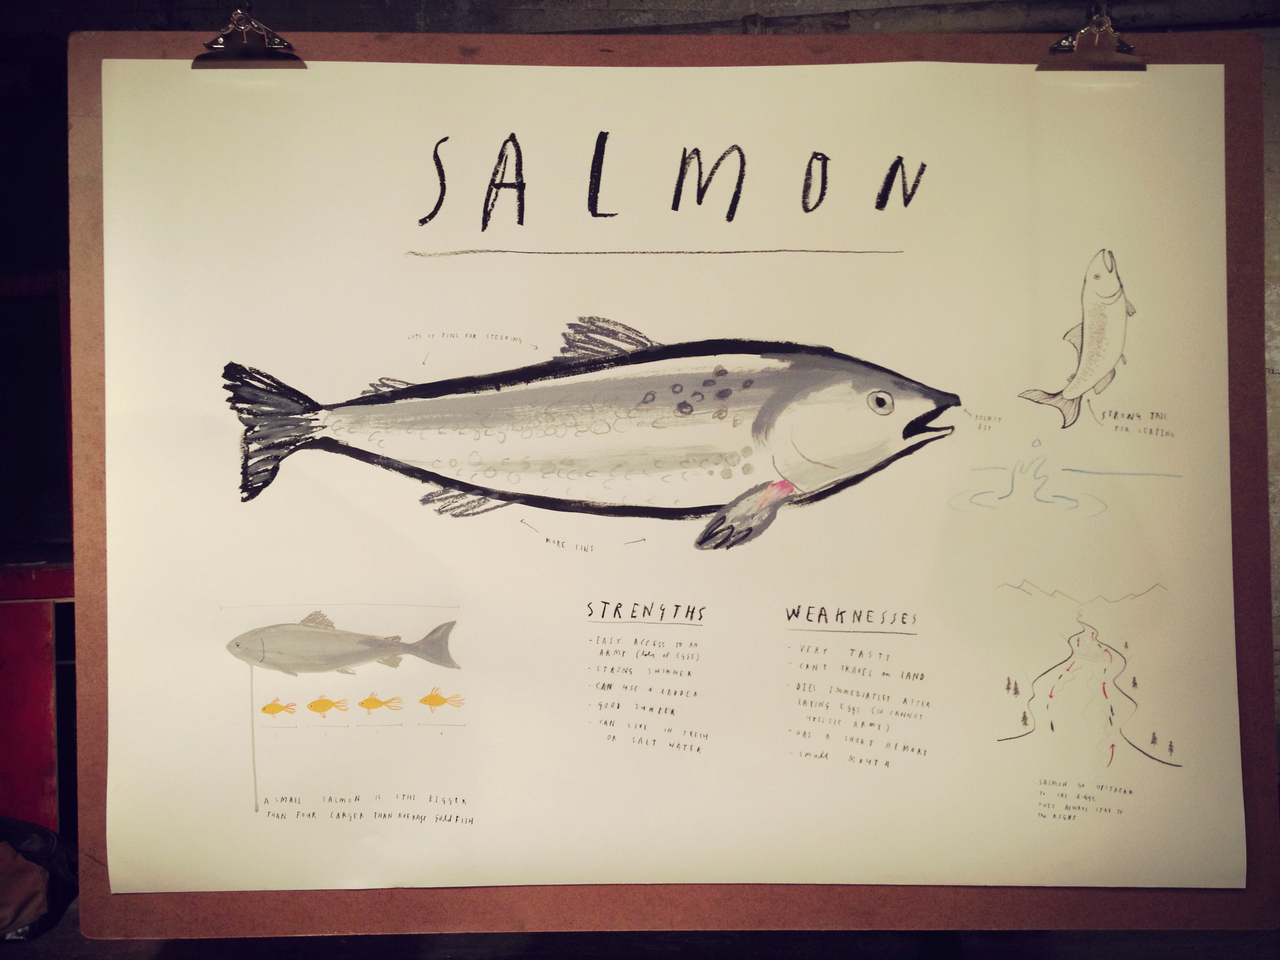 Salmon by Mul Holland Hwang #peppersearching #pepper #drawings #paper #fish